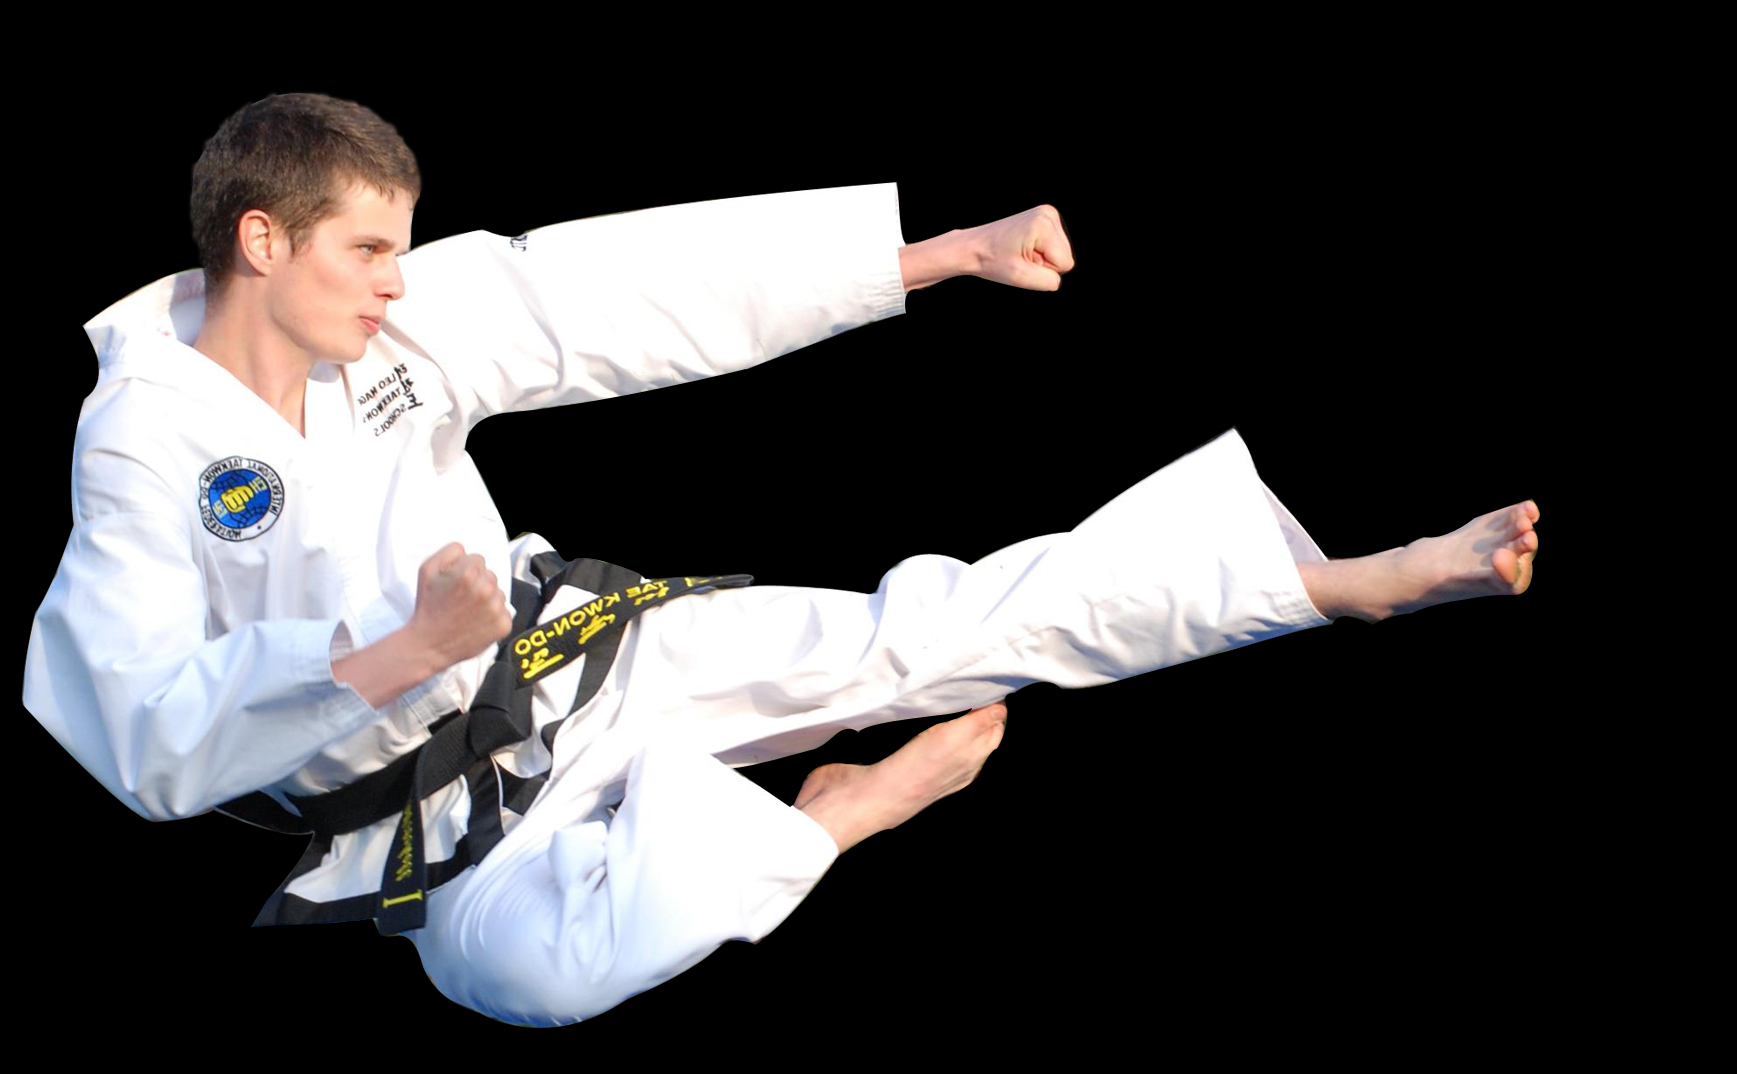 File:Taekwondo kick.jpg - Wikipedia